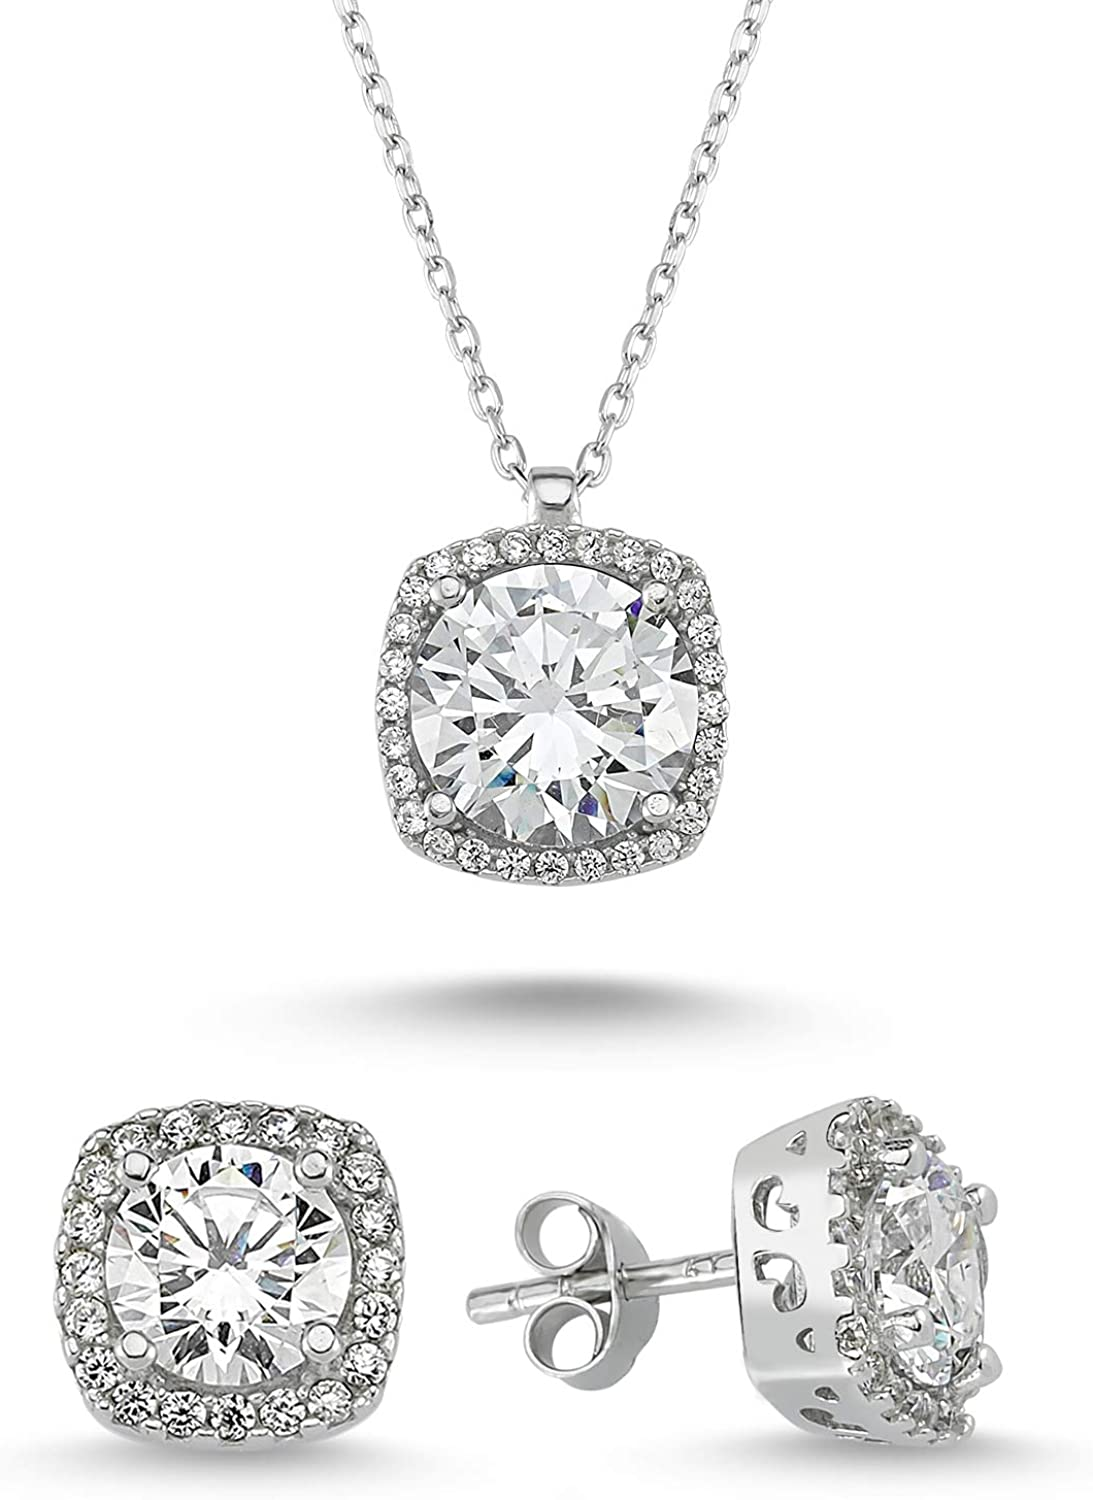 Starlight Diamond Women's Jewelry Sets - 925 Sterling Silver Plated Earring and Necklace Set - Lightweight Square Zircon Diamond Jewelry Sets with Gift Box for Birthday